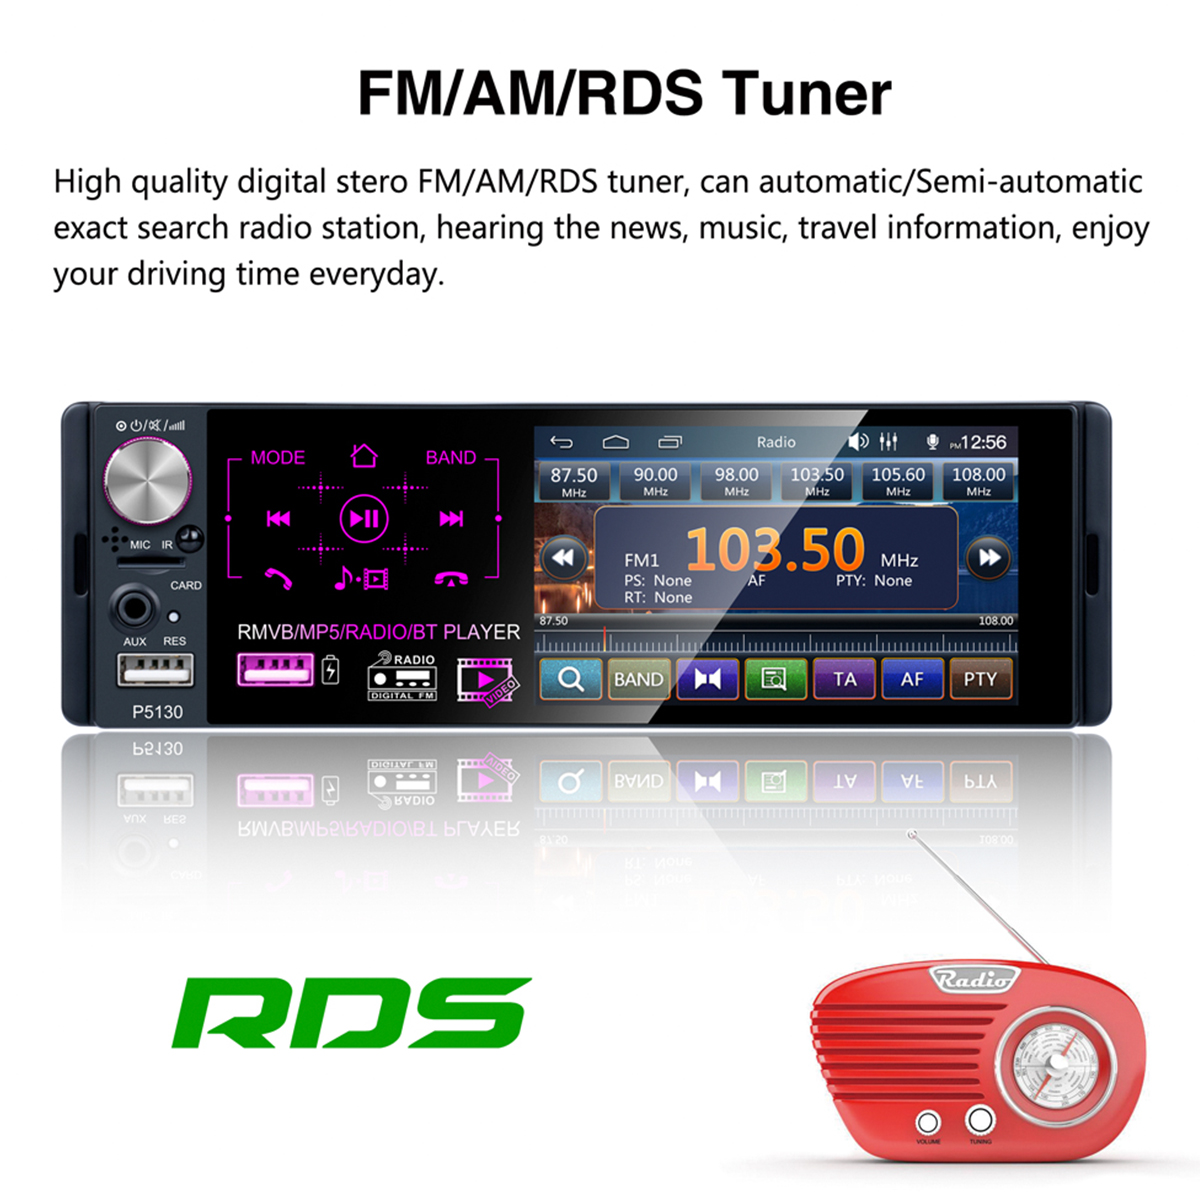 P5130 4.1 Inch 1 DIN Car Radio 1080P Touch Screen MP5 Player FM AM RDS bluetooth AUX Backup Camera with Steering Wheel Control